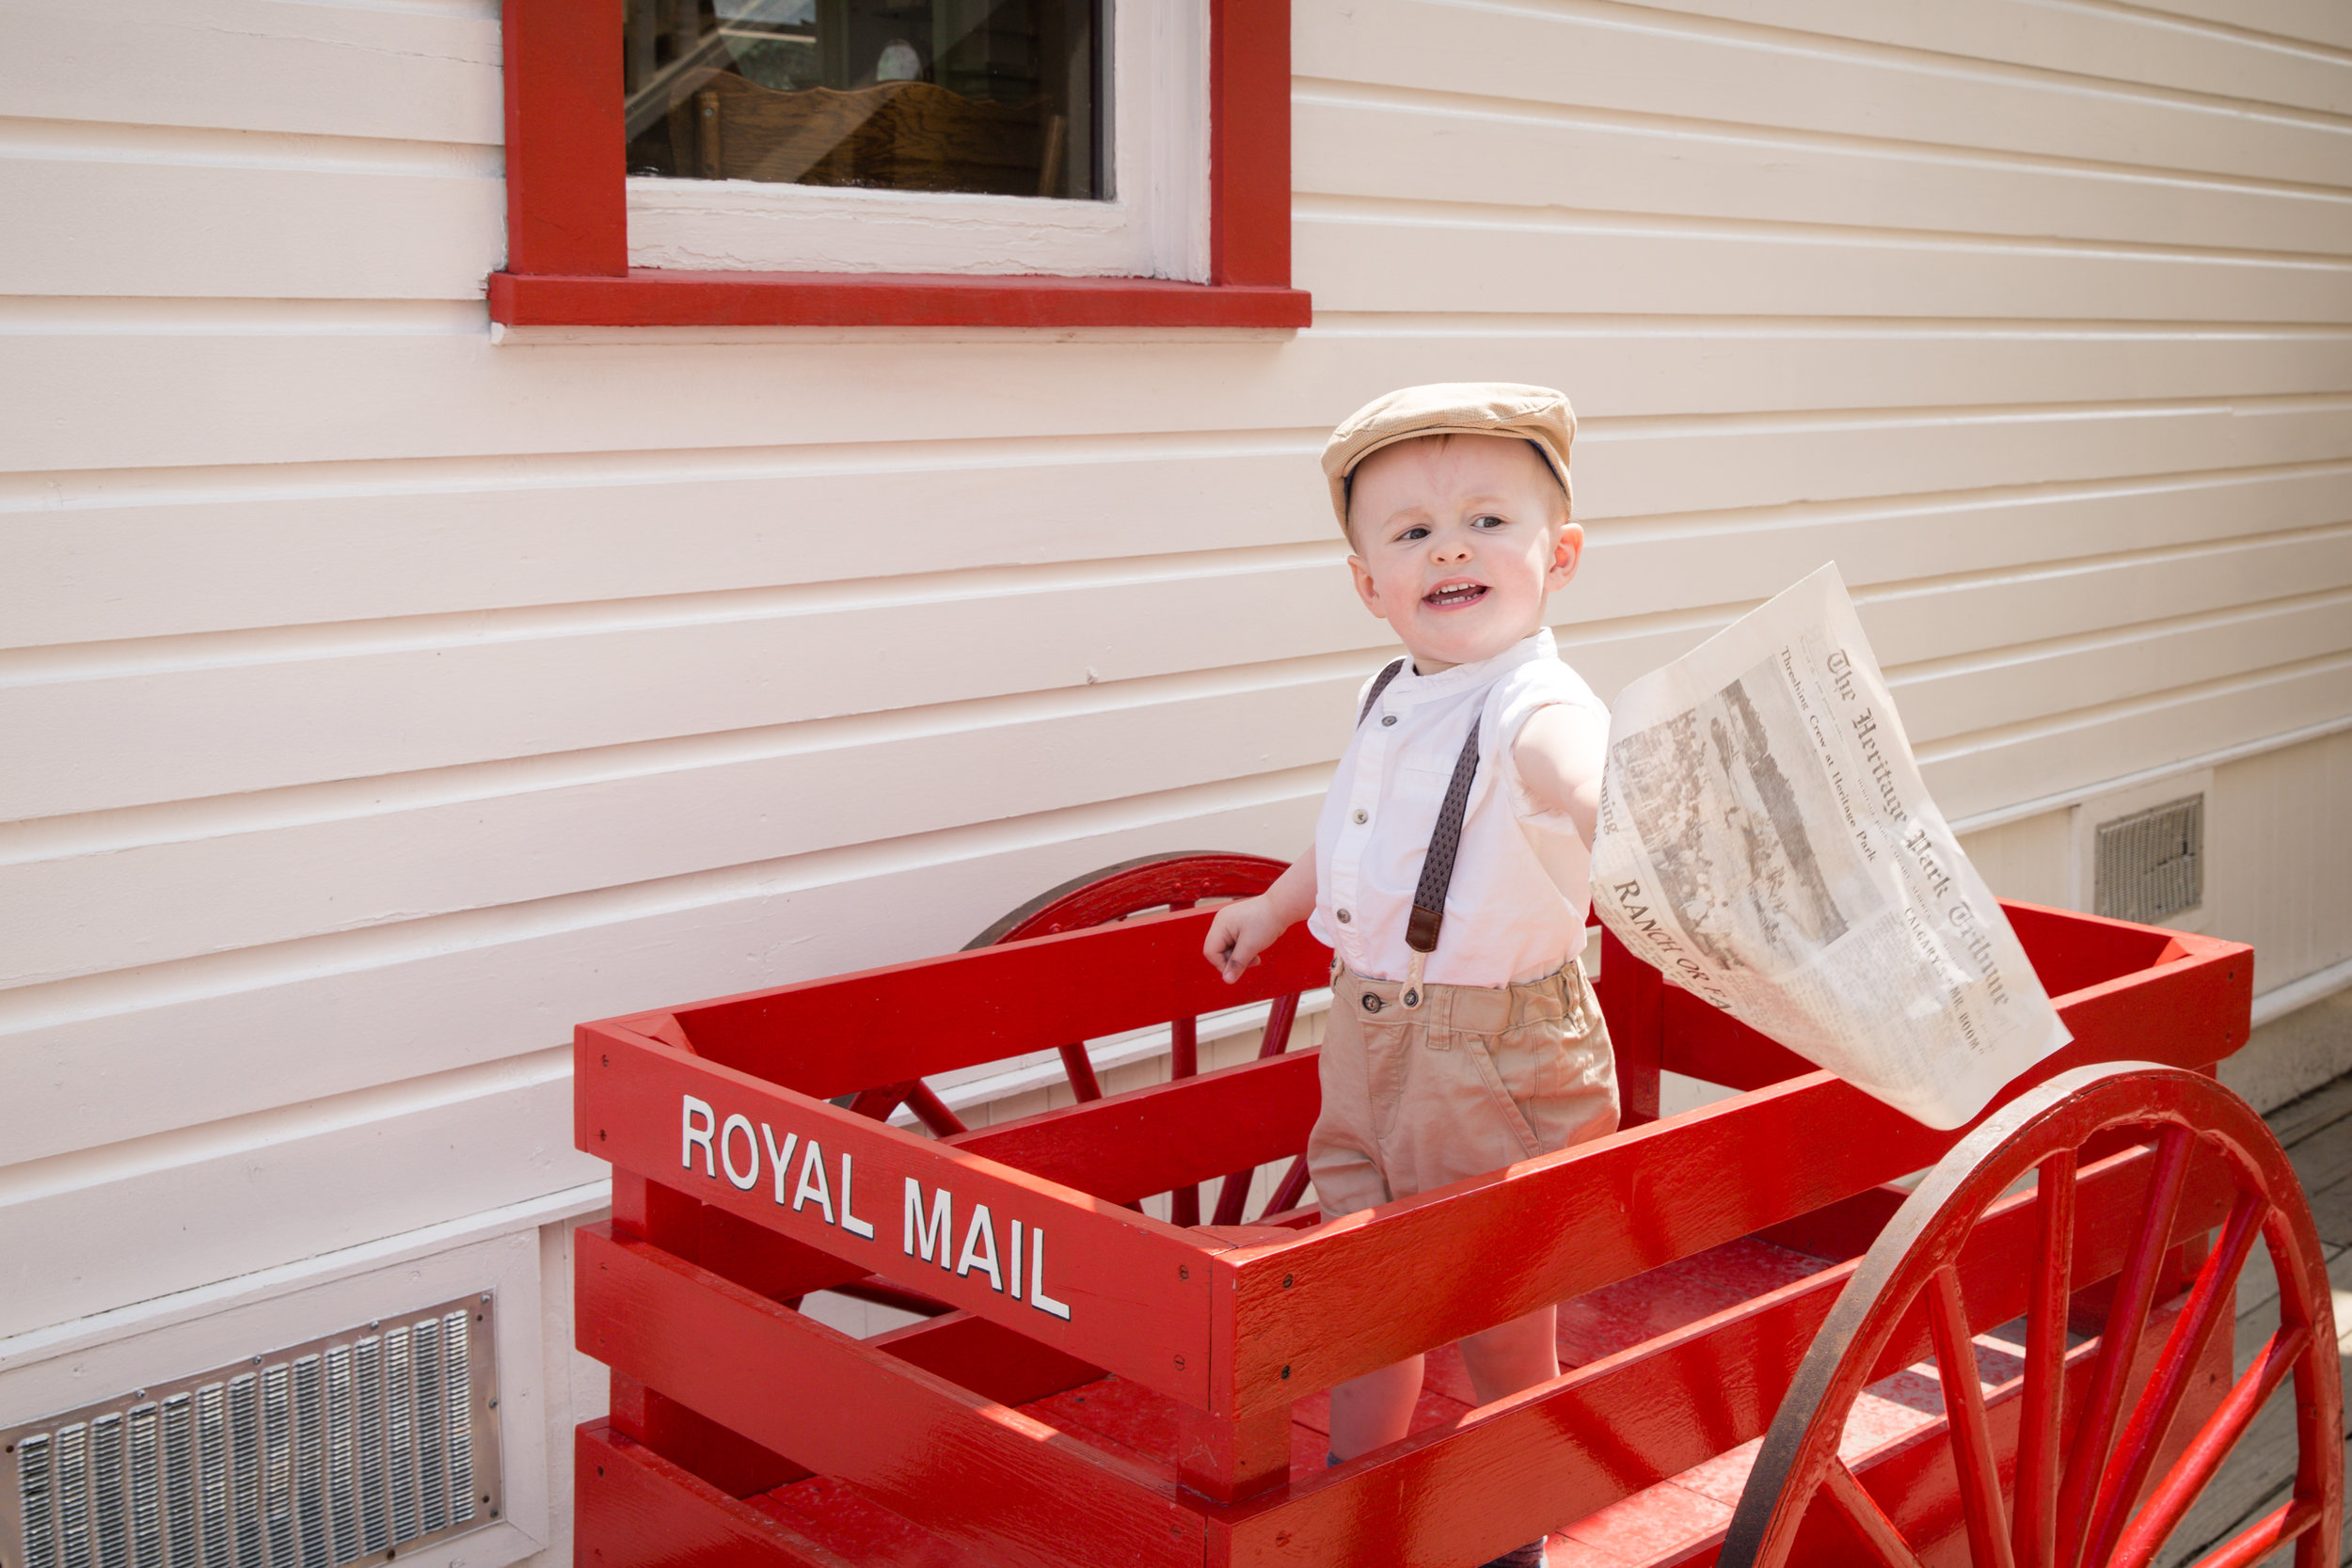 Newspaper anyone? Little cute boy standing in the red Royal Mail wagon at the Heritage Park in Calgary holding old style newspaper. Calgary child and family photographer. Milashka Photography